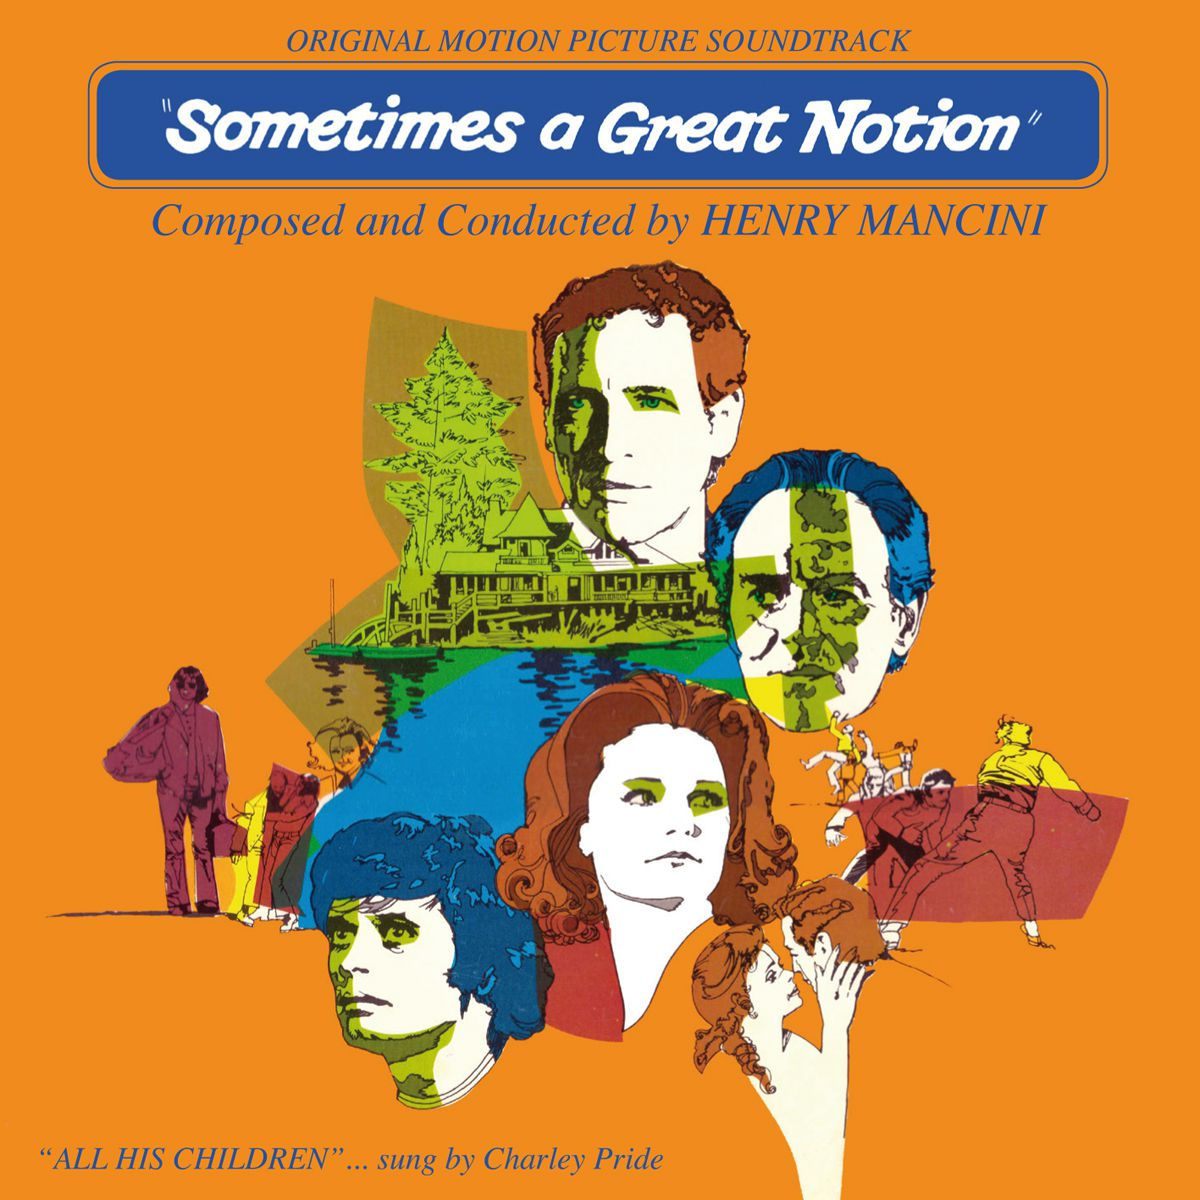 Sometimes A Great Notion - Henry Mancini